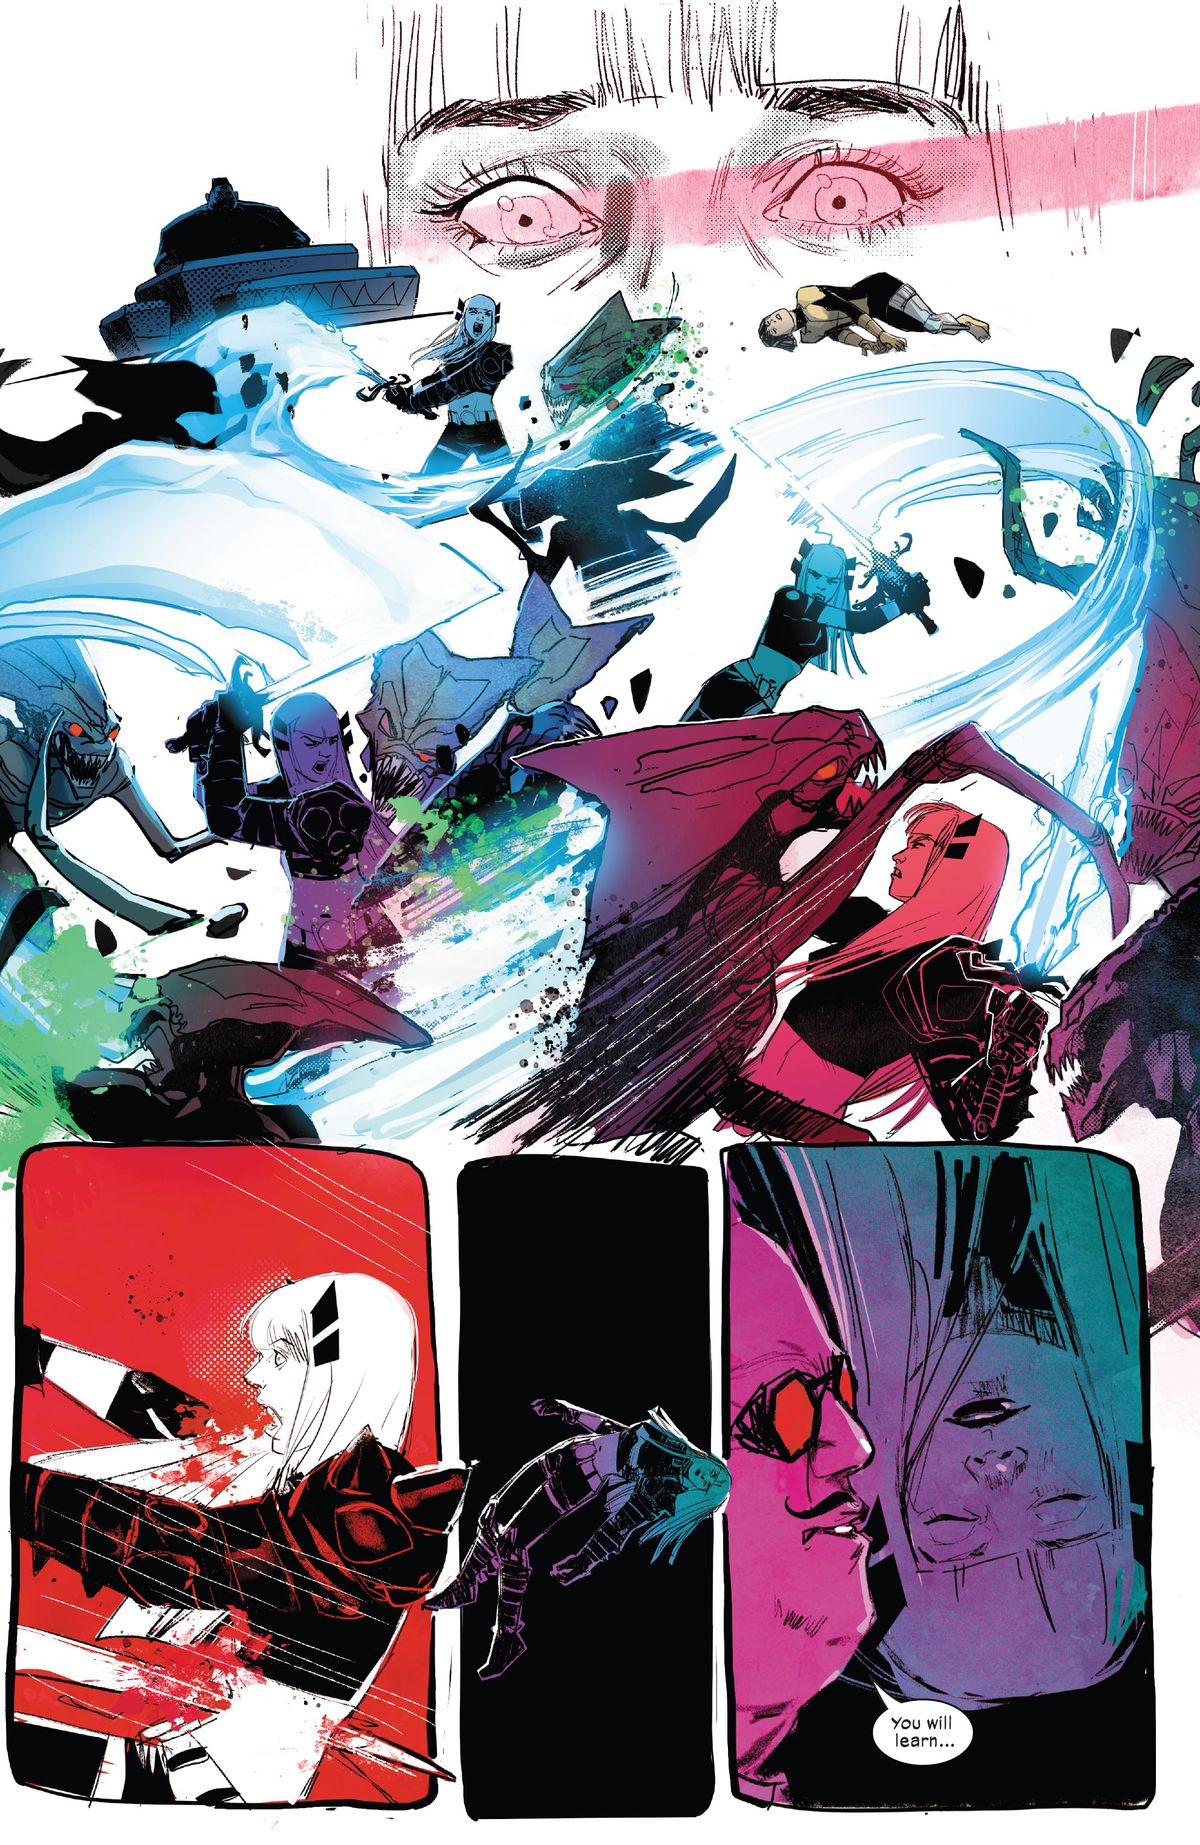 Illyana Rasputin/Magik slays brood alien after brood alien in flashes of blue, green, magenta, and purple, before one of them impales her on their claw and she floats through darkness with the Shadow King in New Mutants #22 (2021).